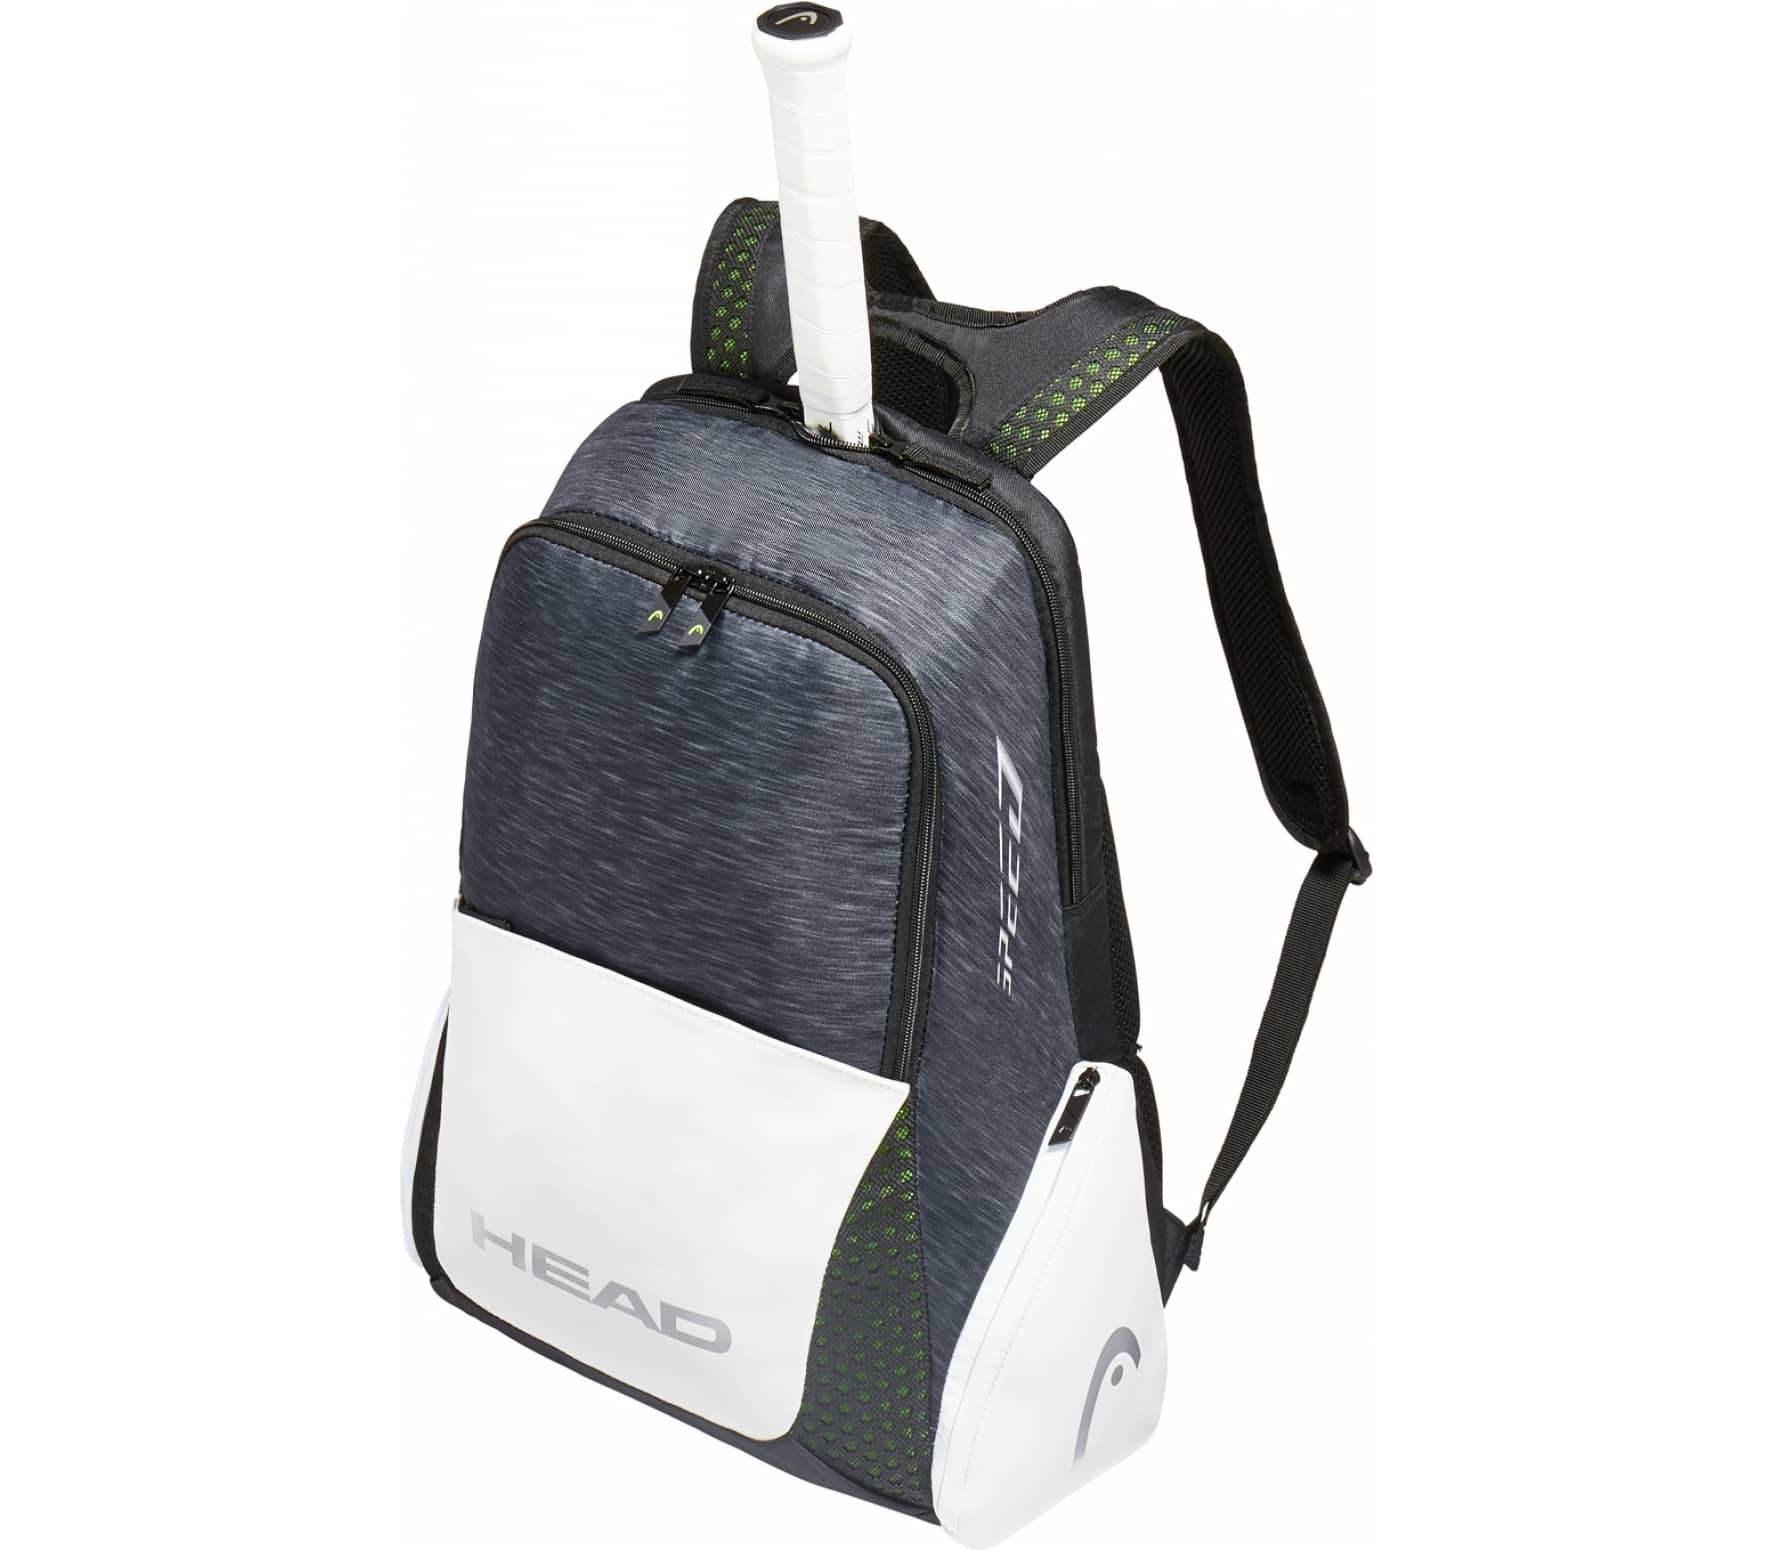 Head Tennis Bag >> Head - Djokovic backpack tennis backpack (black) - buy it at the Keller Sports online shop